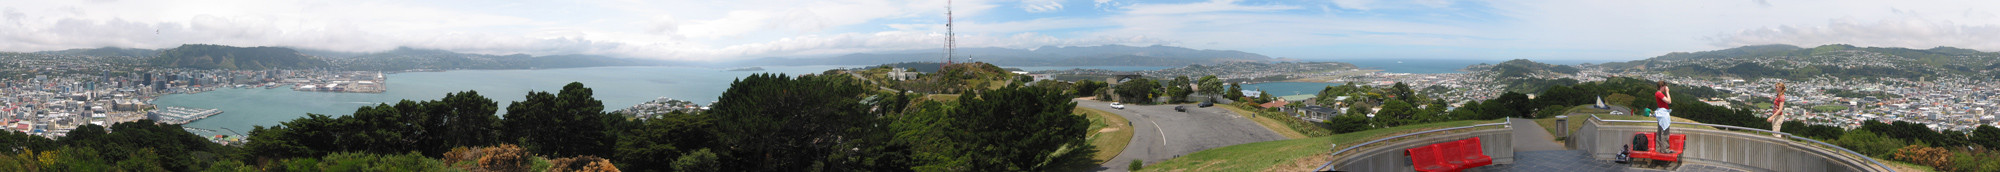 Panographic Image from Mount Victoria, Wellington, New Zealand